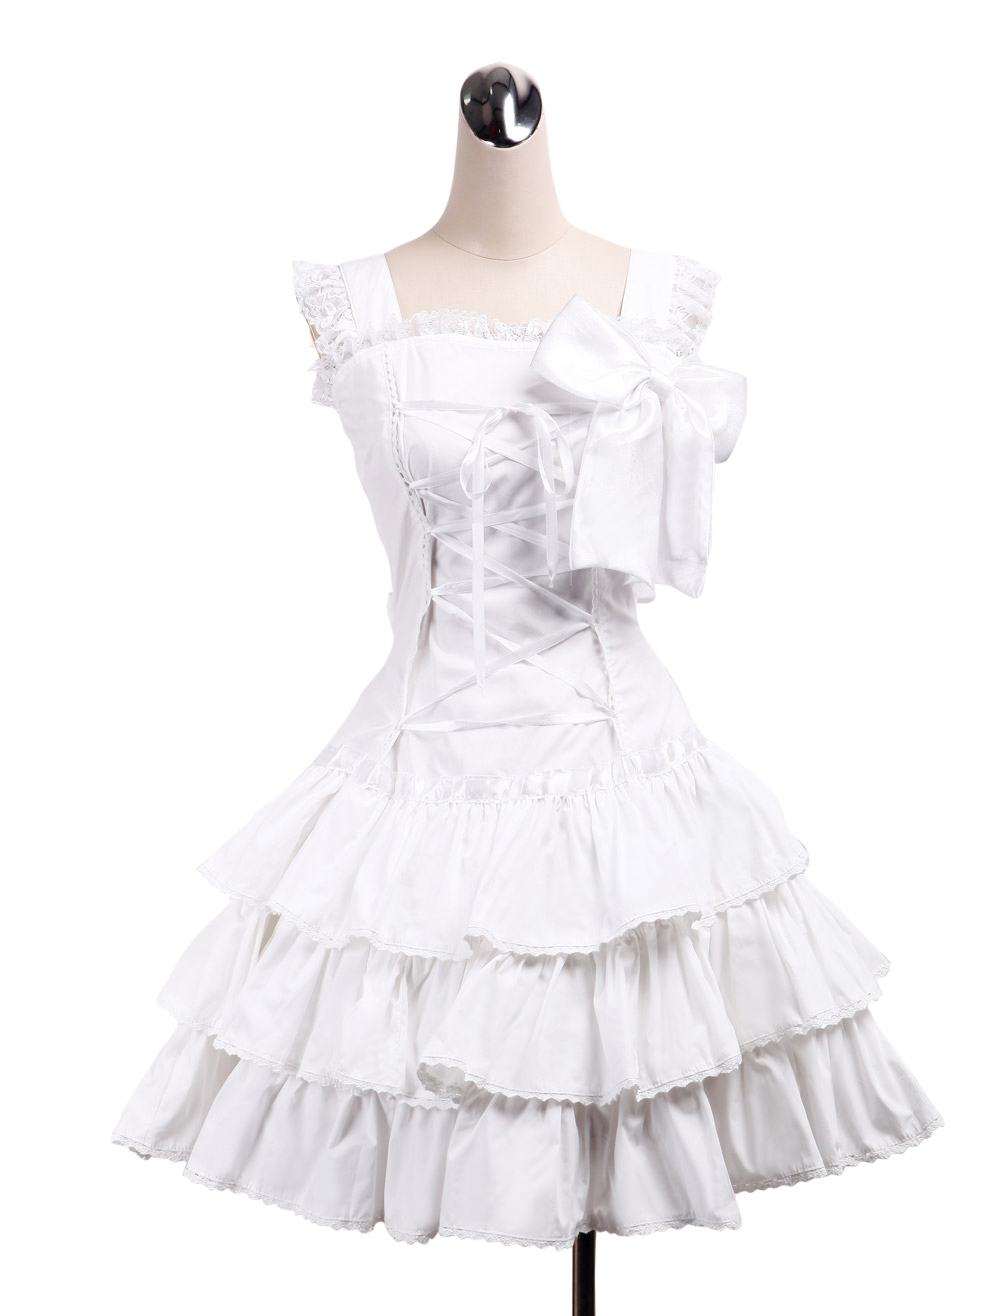 Primary image for ZeroMart White Cotton Bow Ruffles Lace Cute Sweet Retro Victorian Lolita Dress